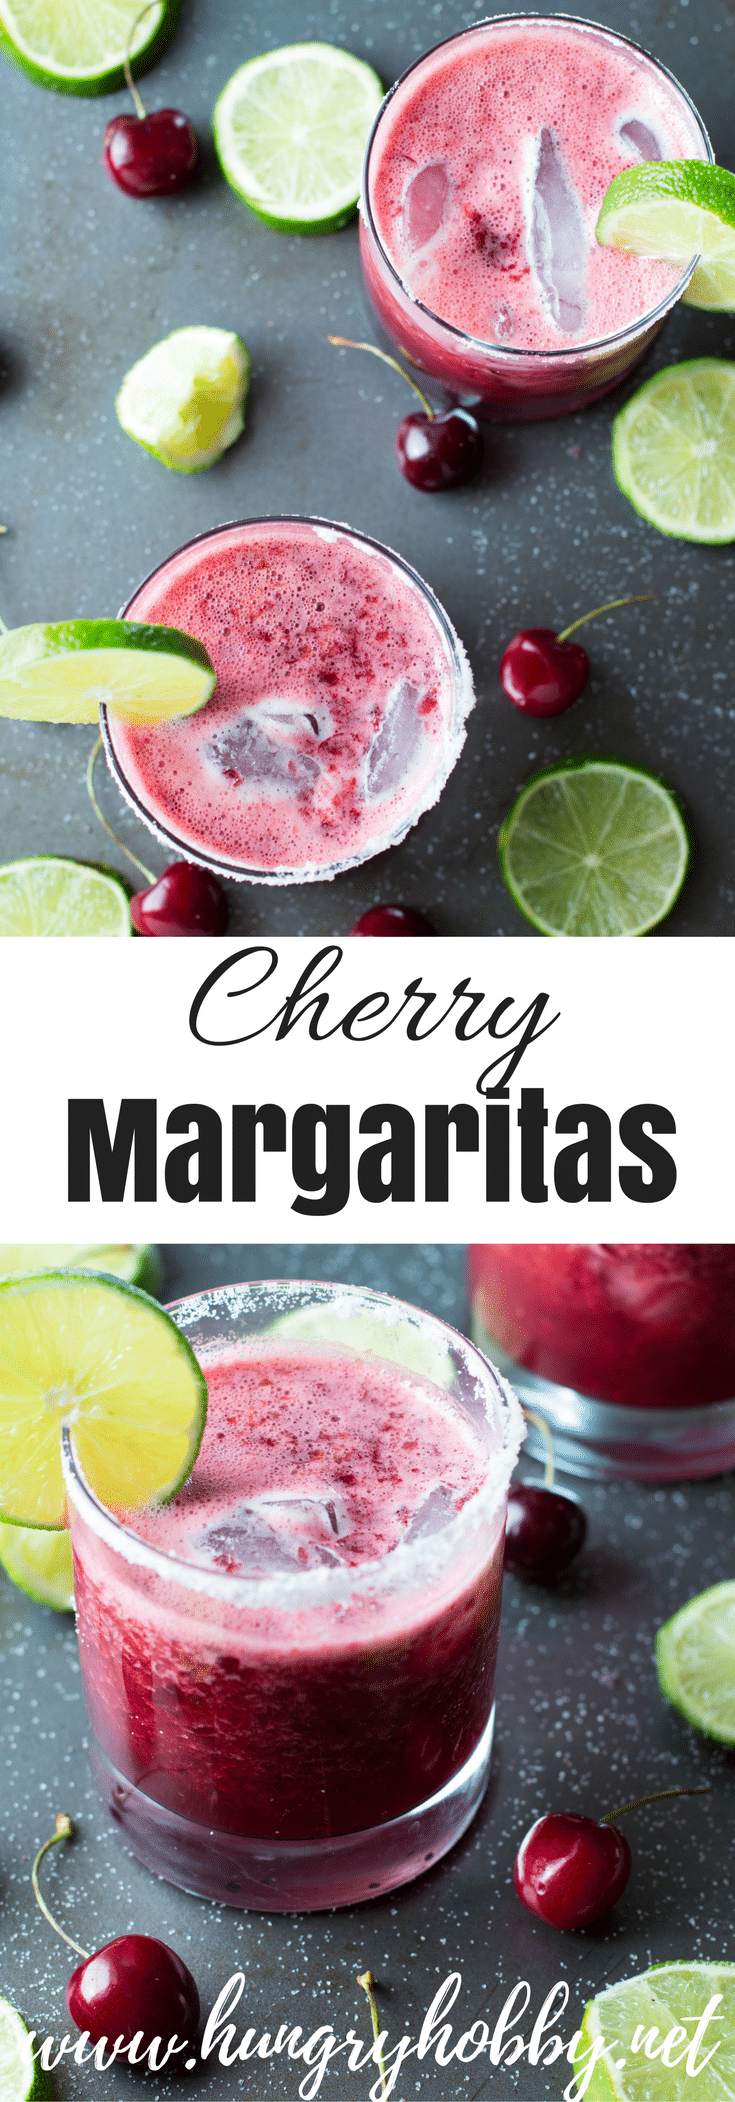 Refreshing and slightly healthier crushed cherry margaritas!